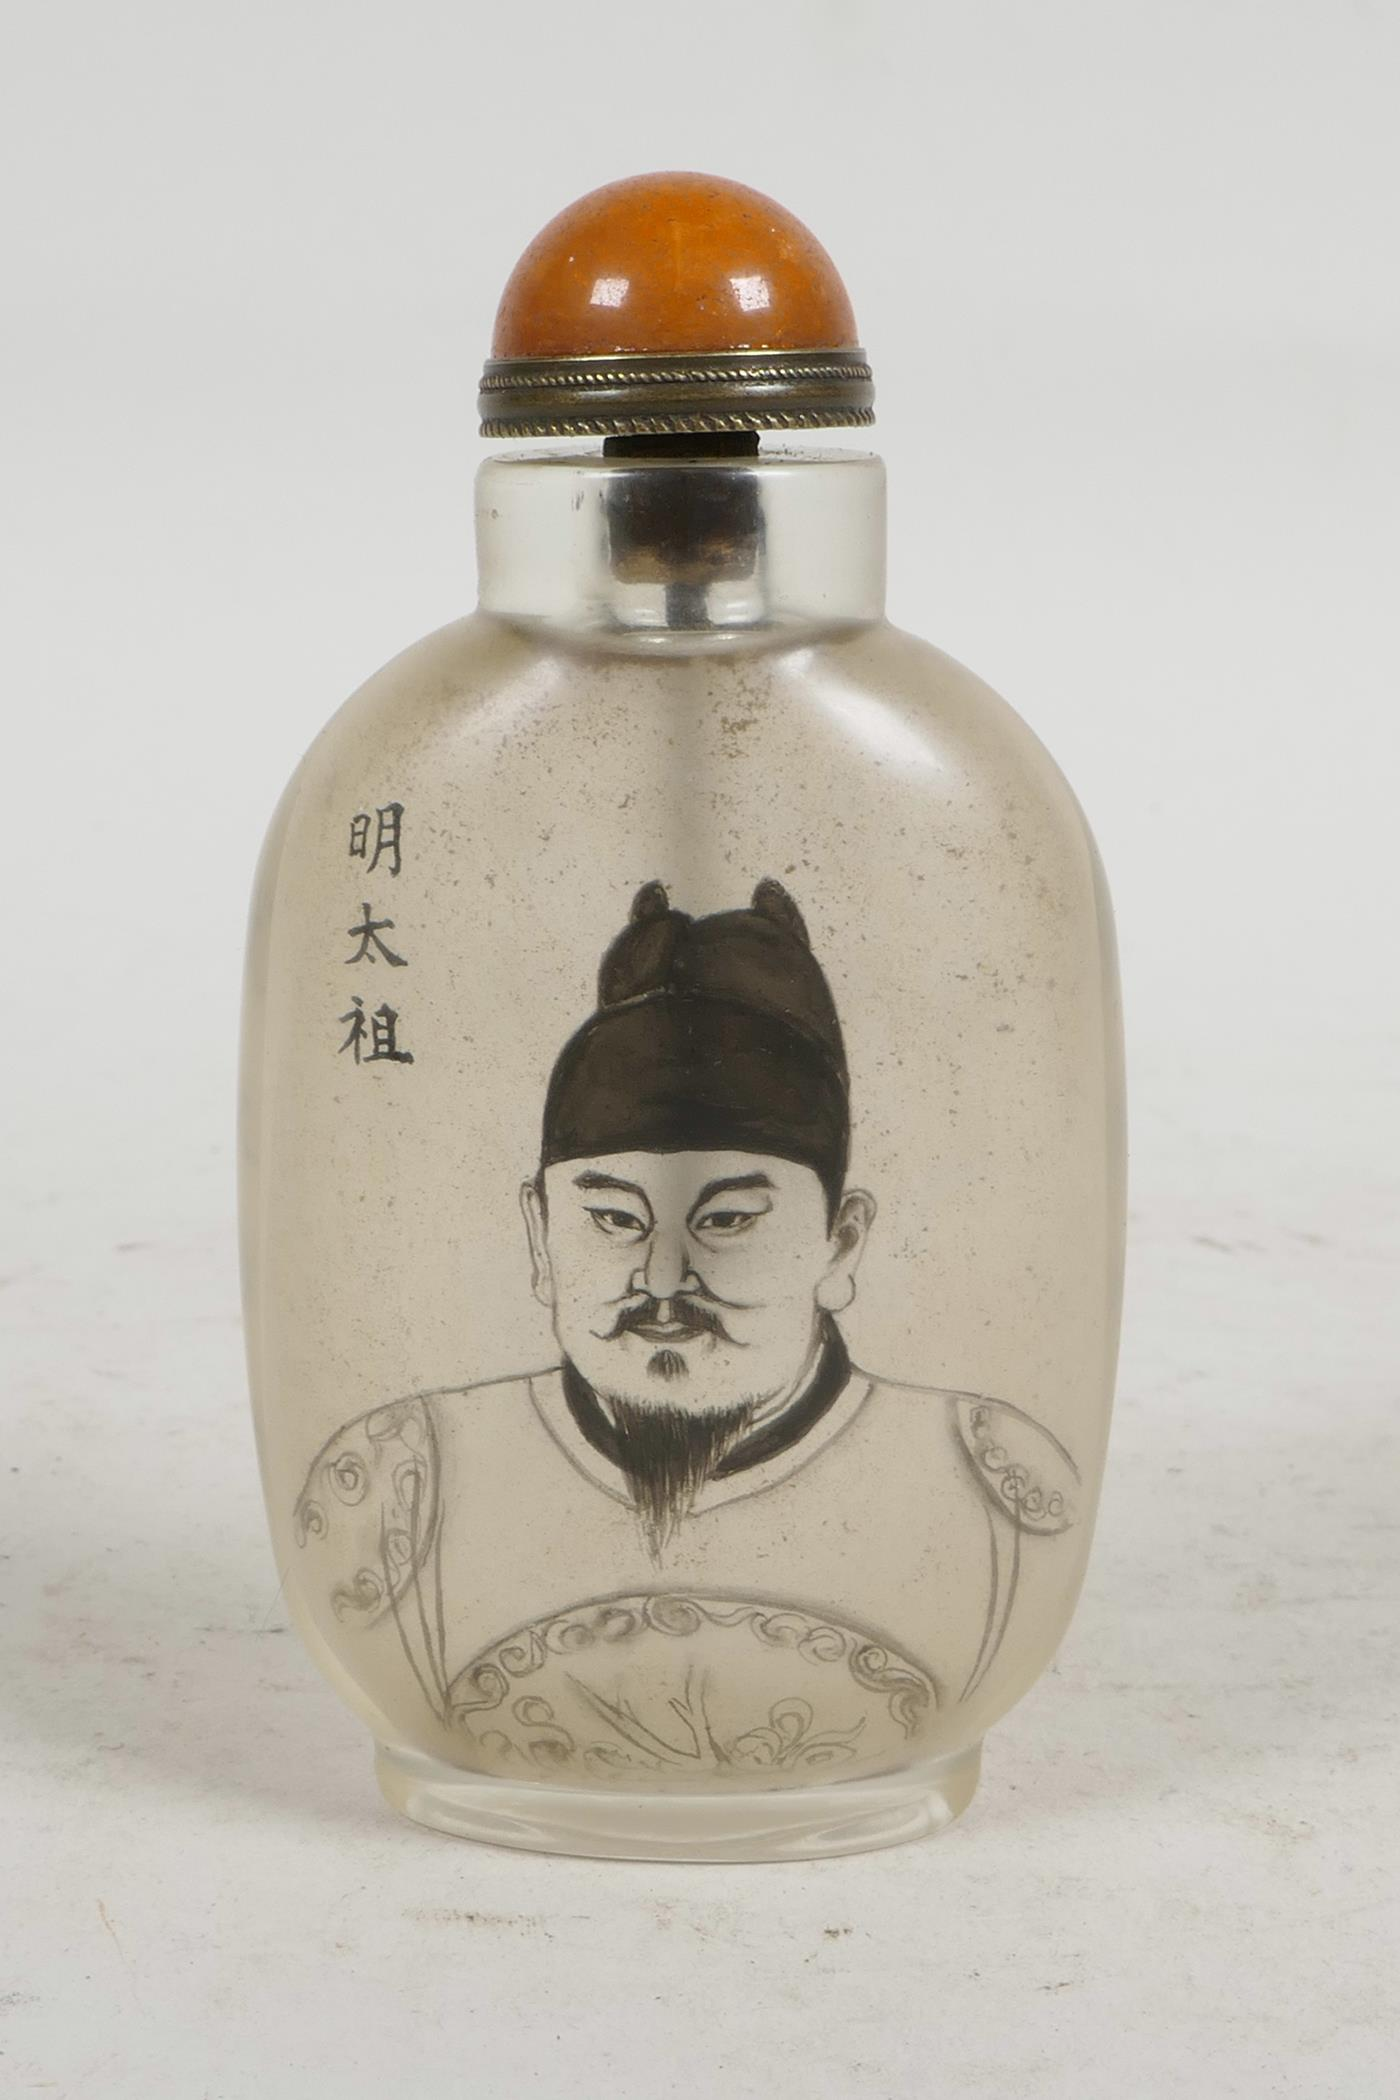 Lot 36 - A Chinese reverse decorated snuff bottle depicting a Chinese emperor, character inscription verso,